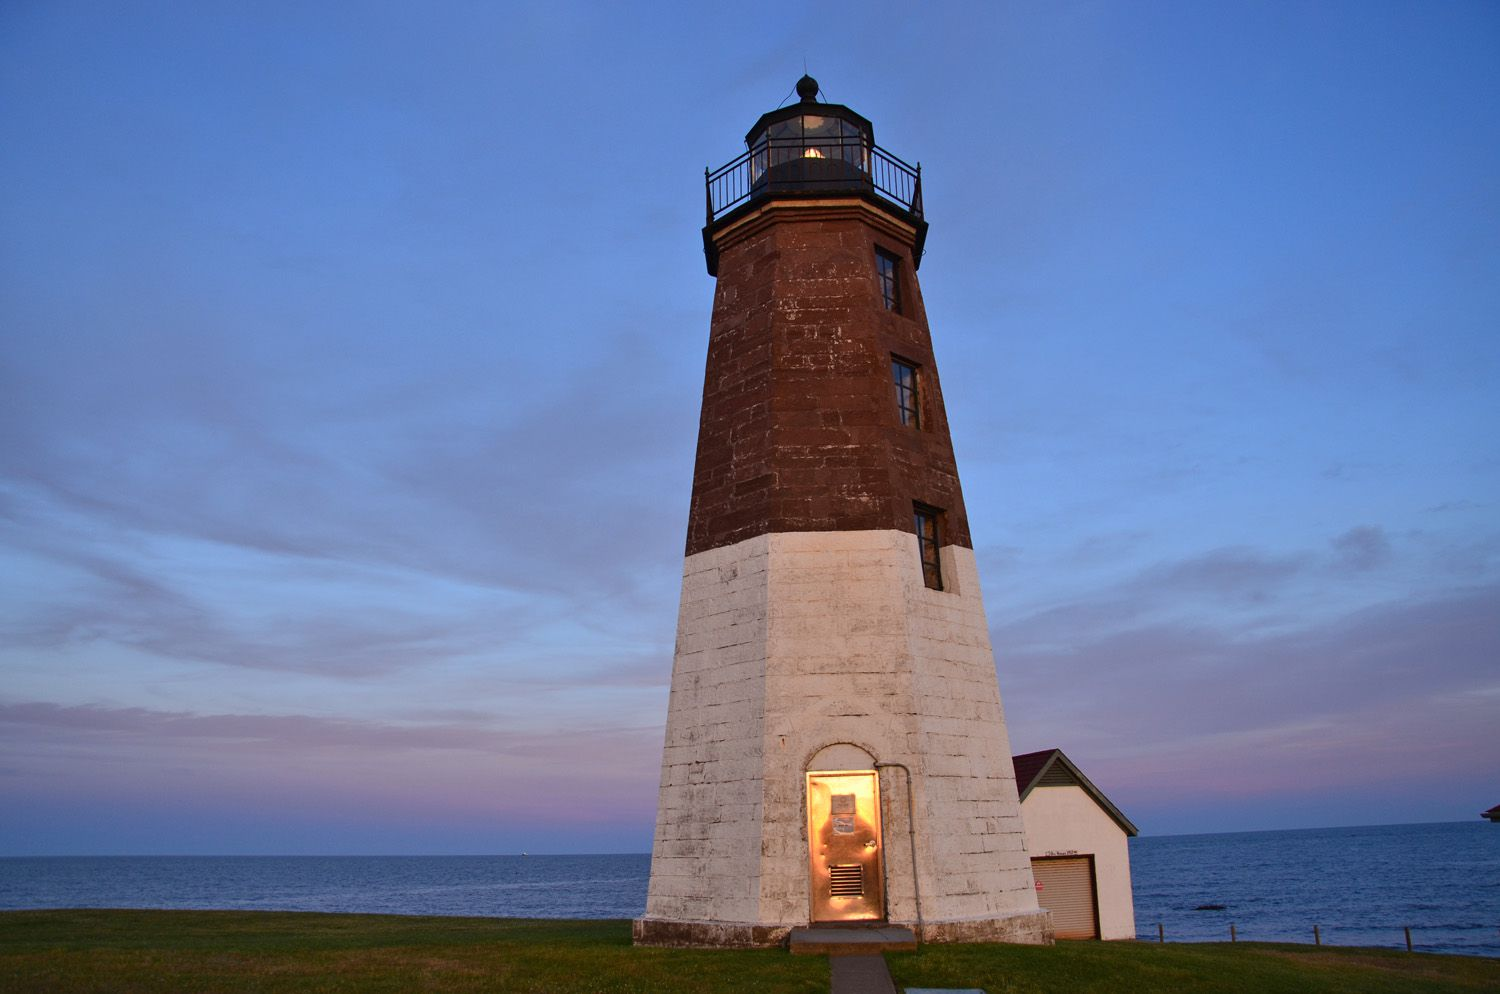 Point Judith Light, Narragansett, Rhode Island